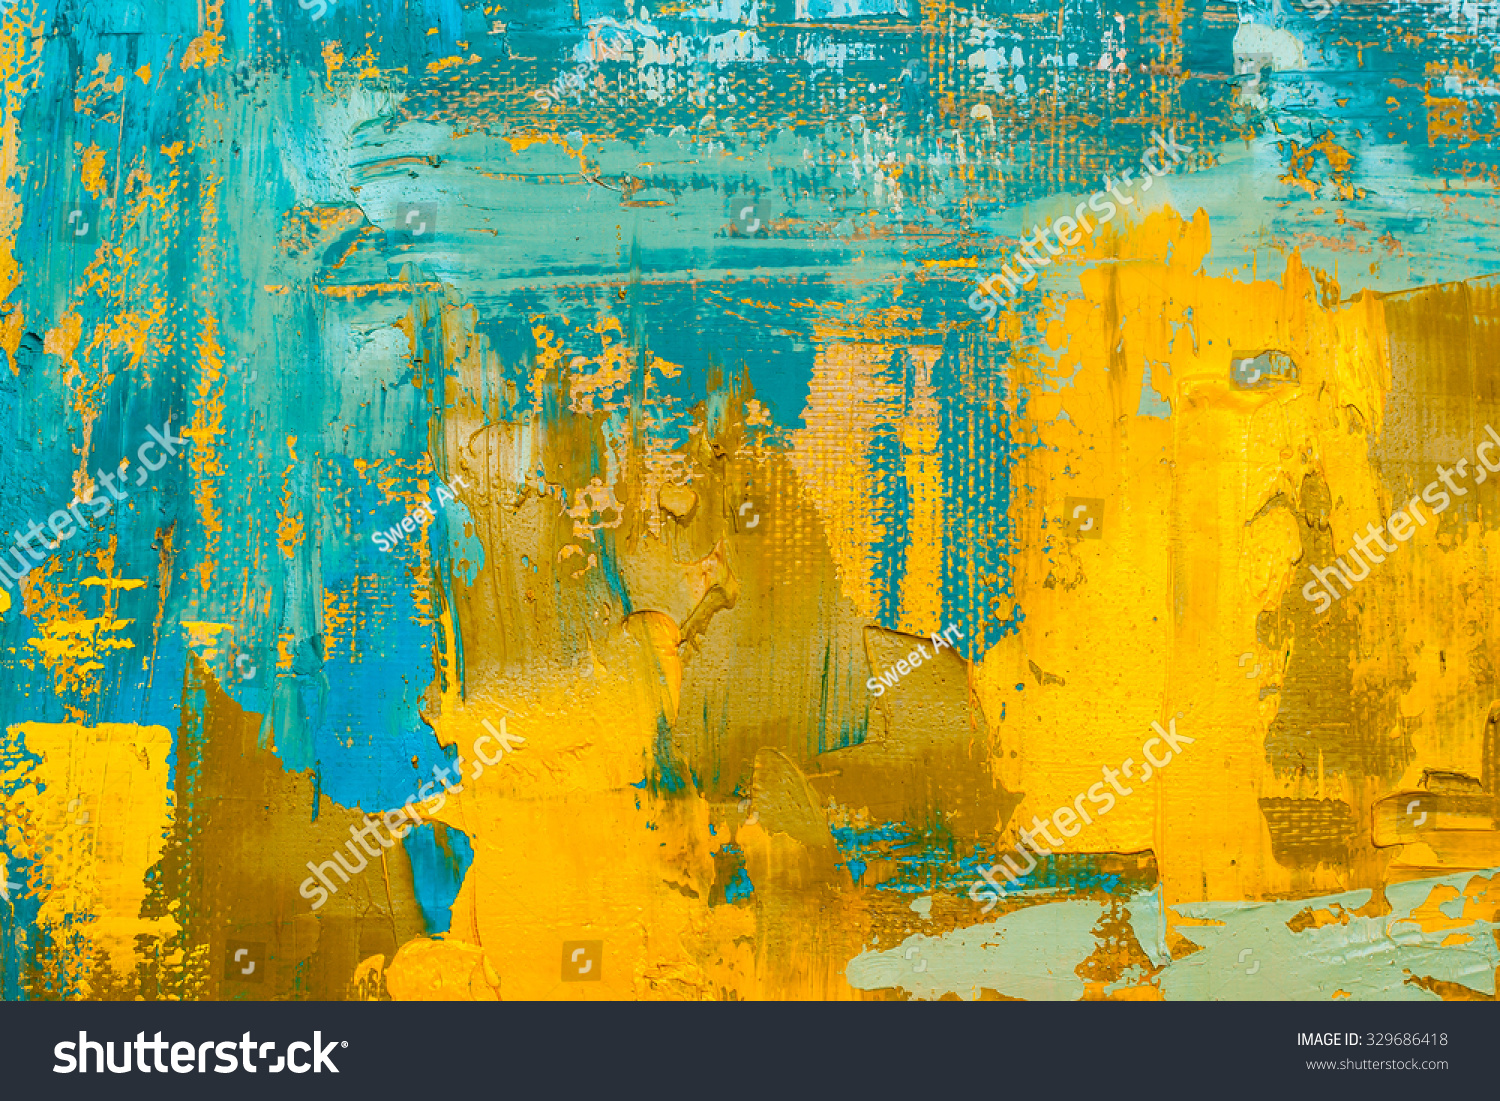 Royalty free abstract art background oil painting for Texture painting on canvas